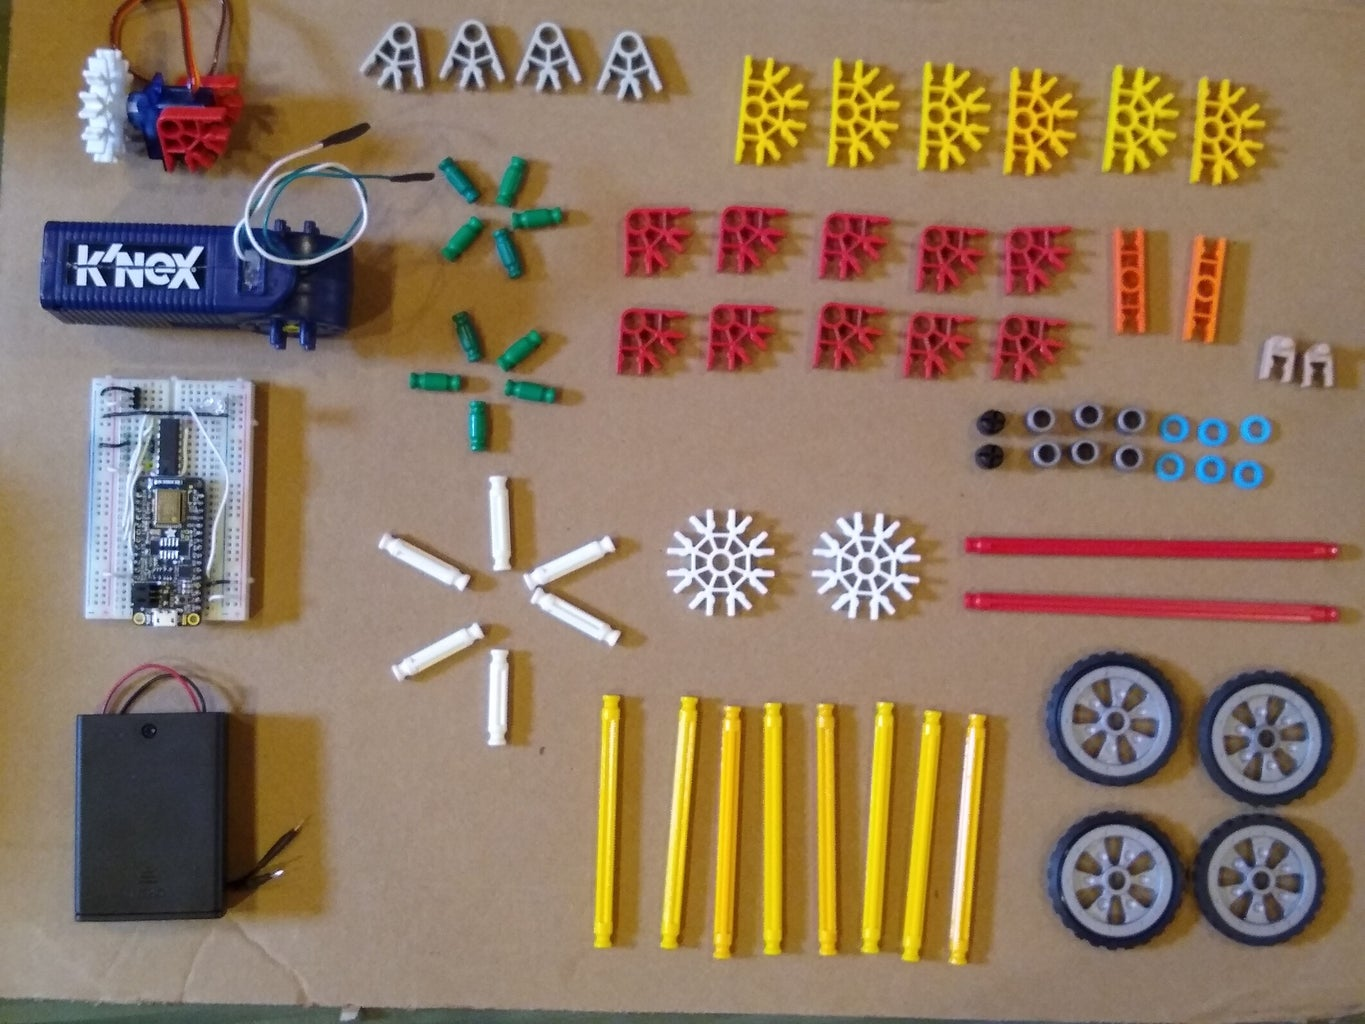 Required Parts for This Project